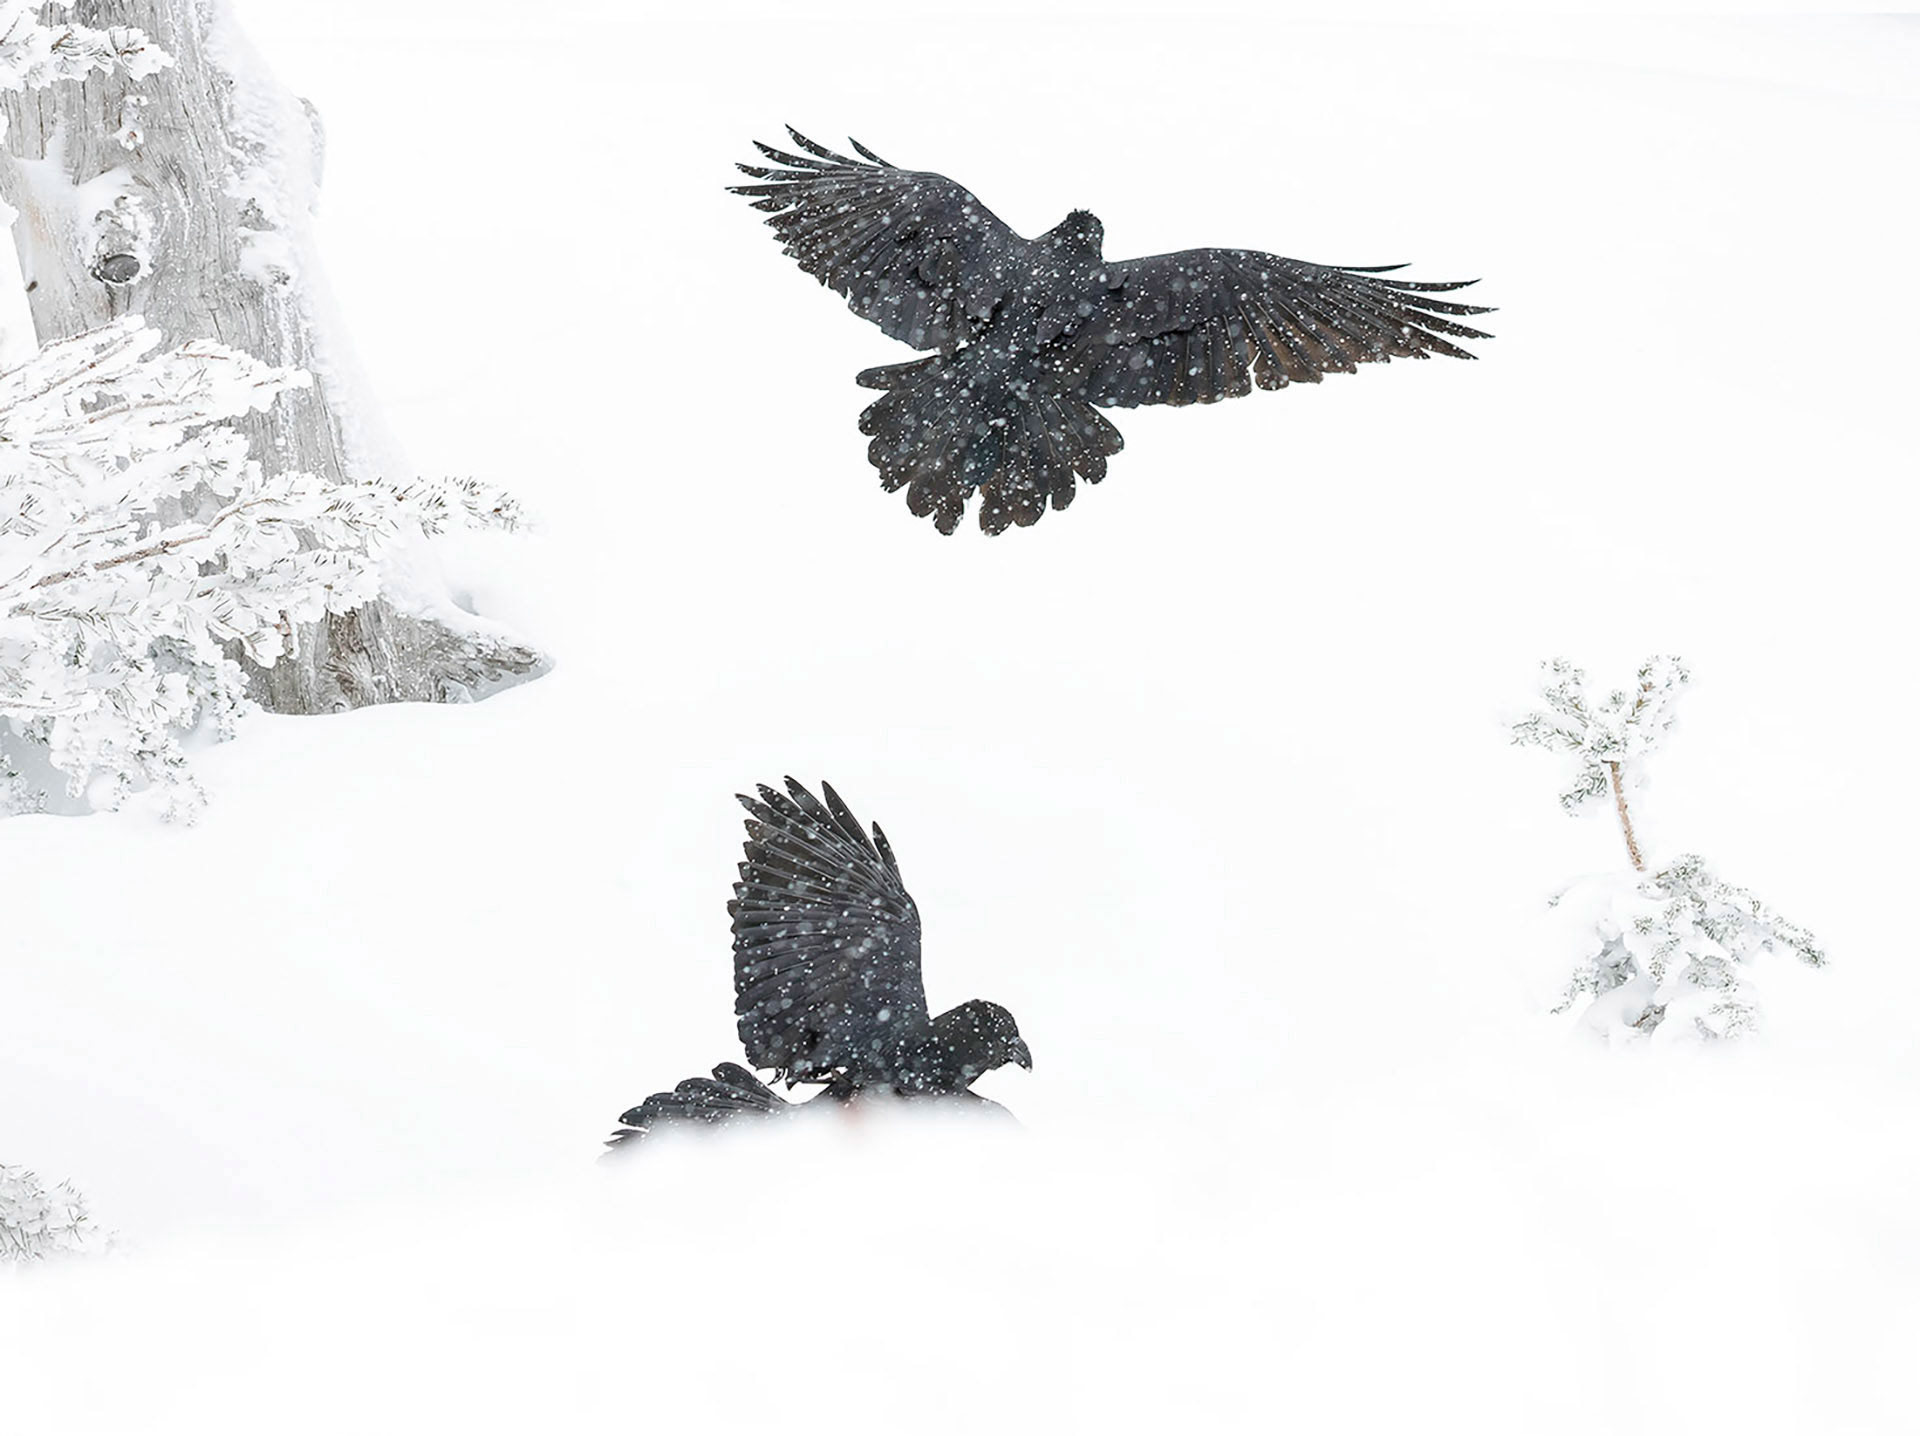 photogreaphy of ravens in flight black bird corvid photos - Day Dreaming